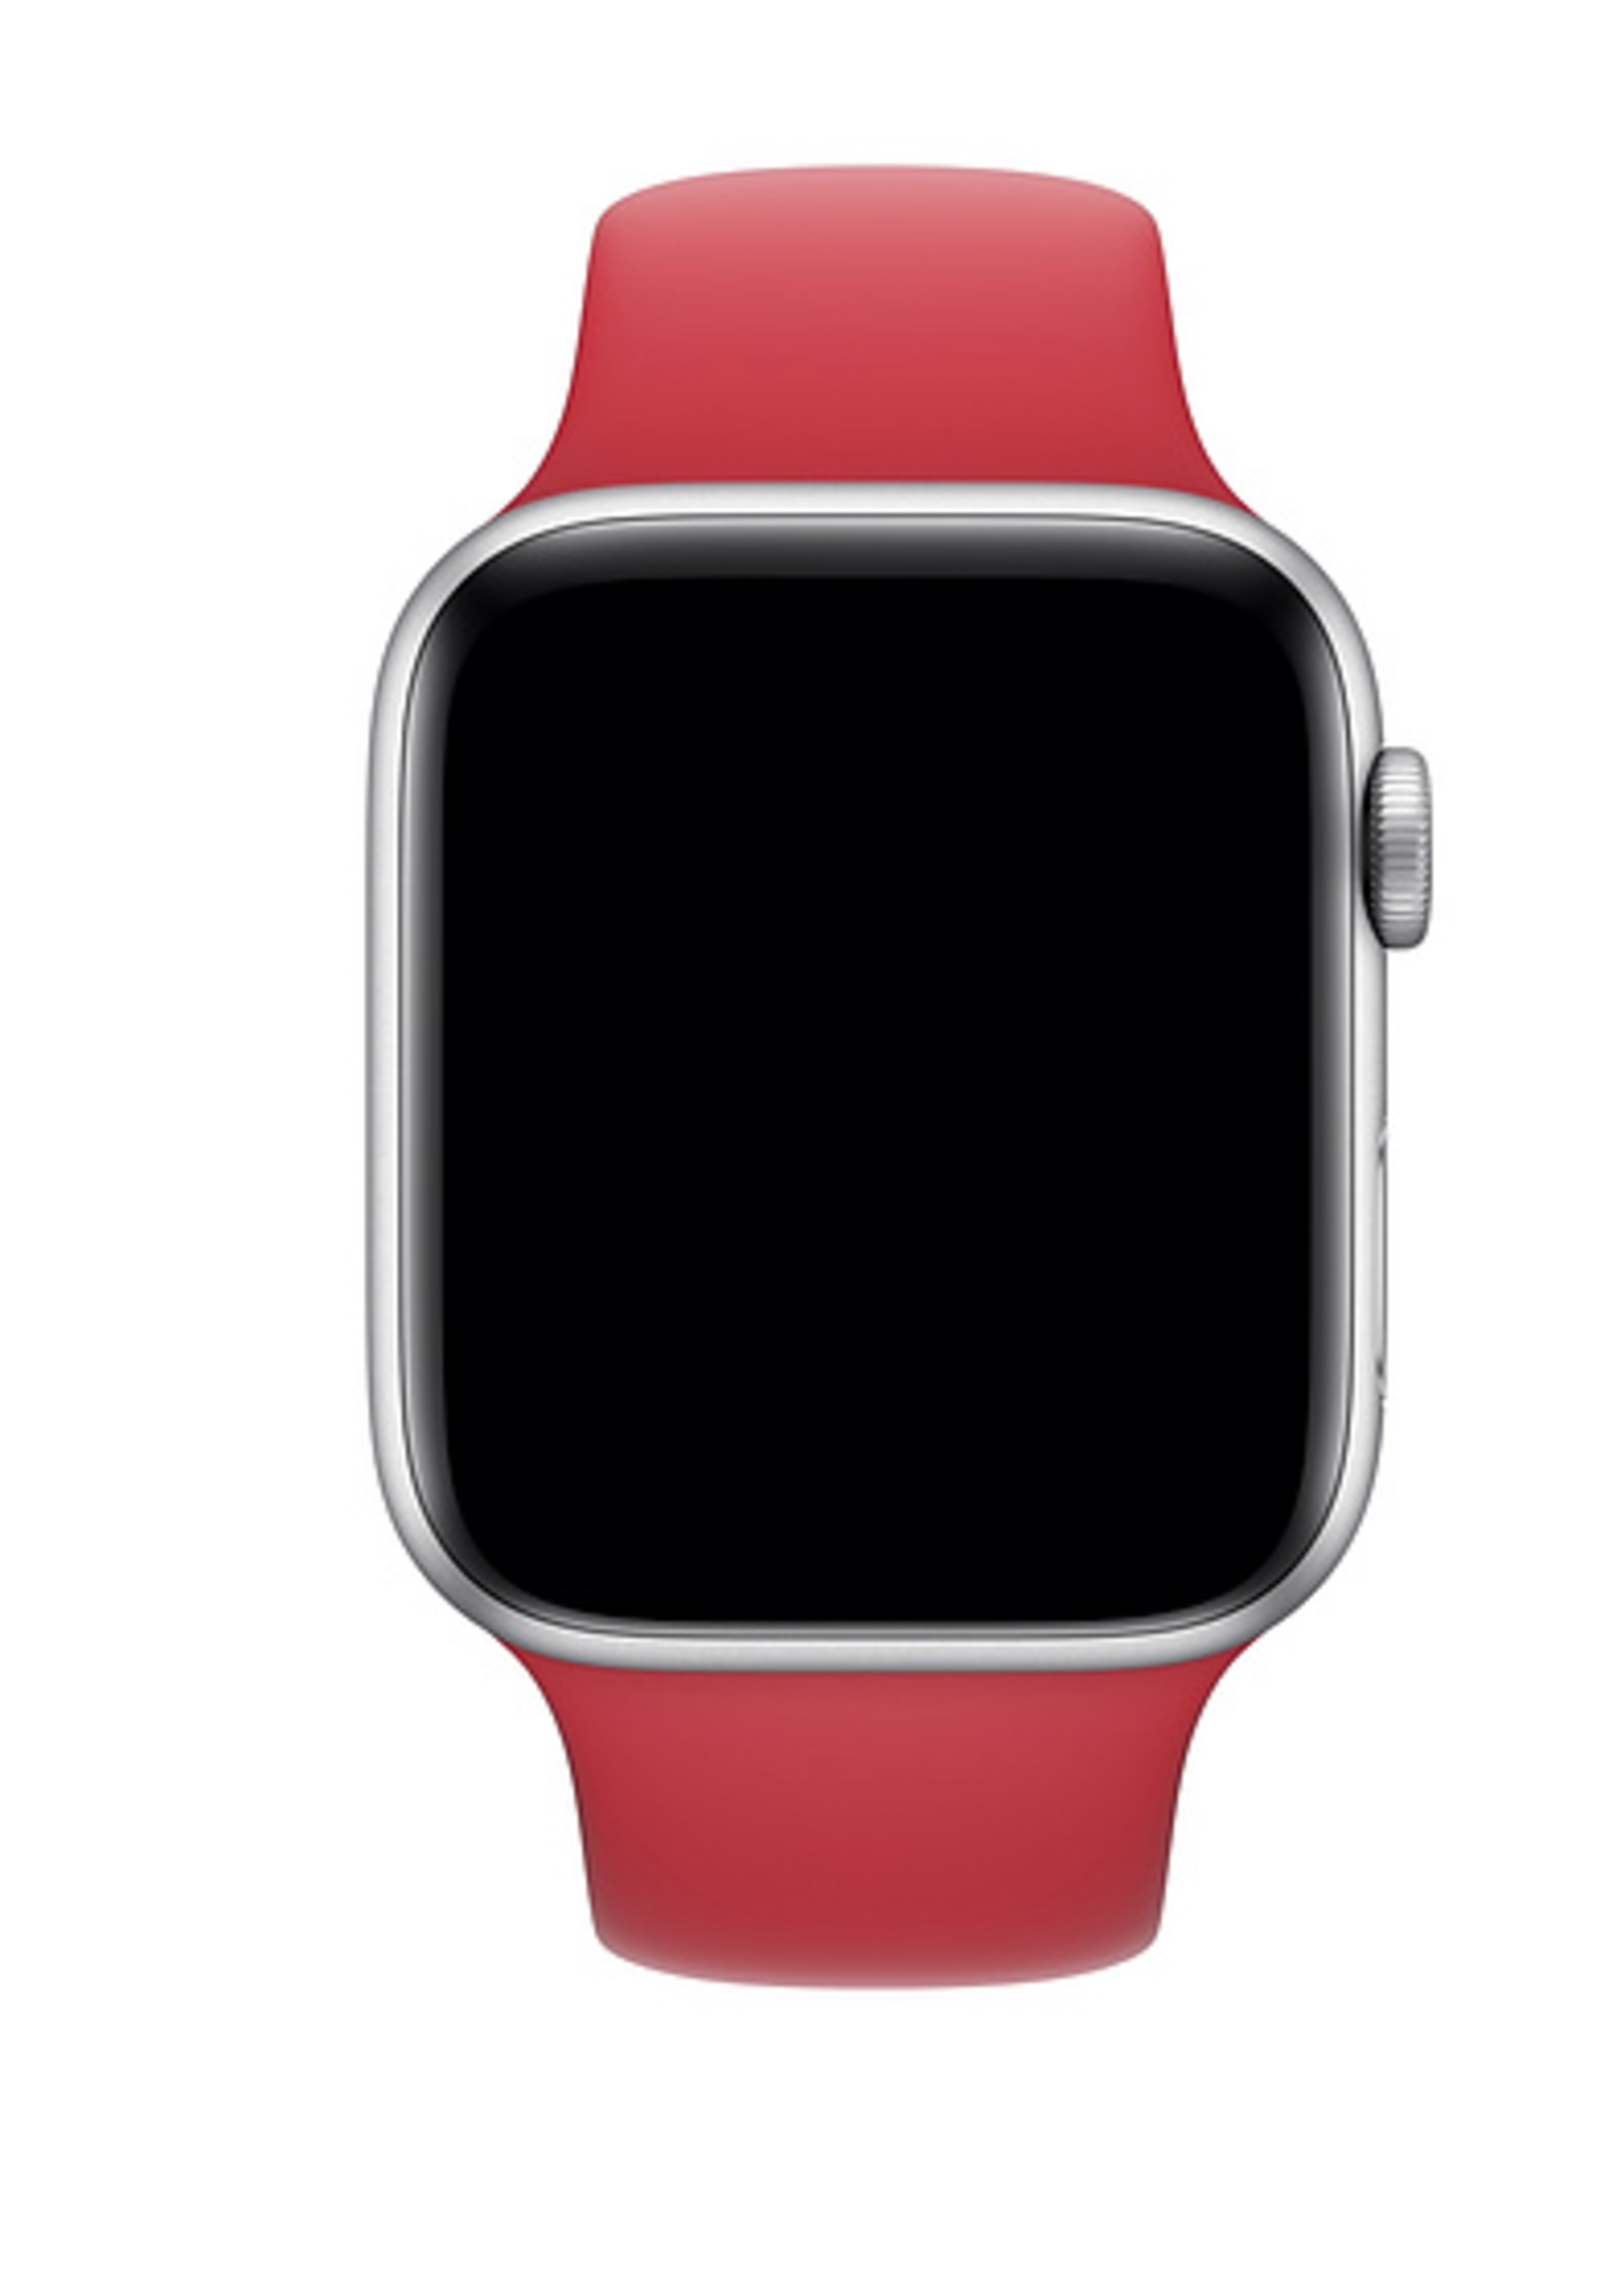 42mm/44mm Product Red Band